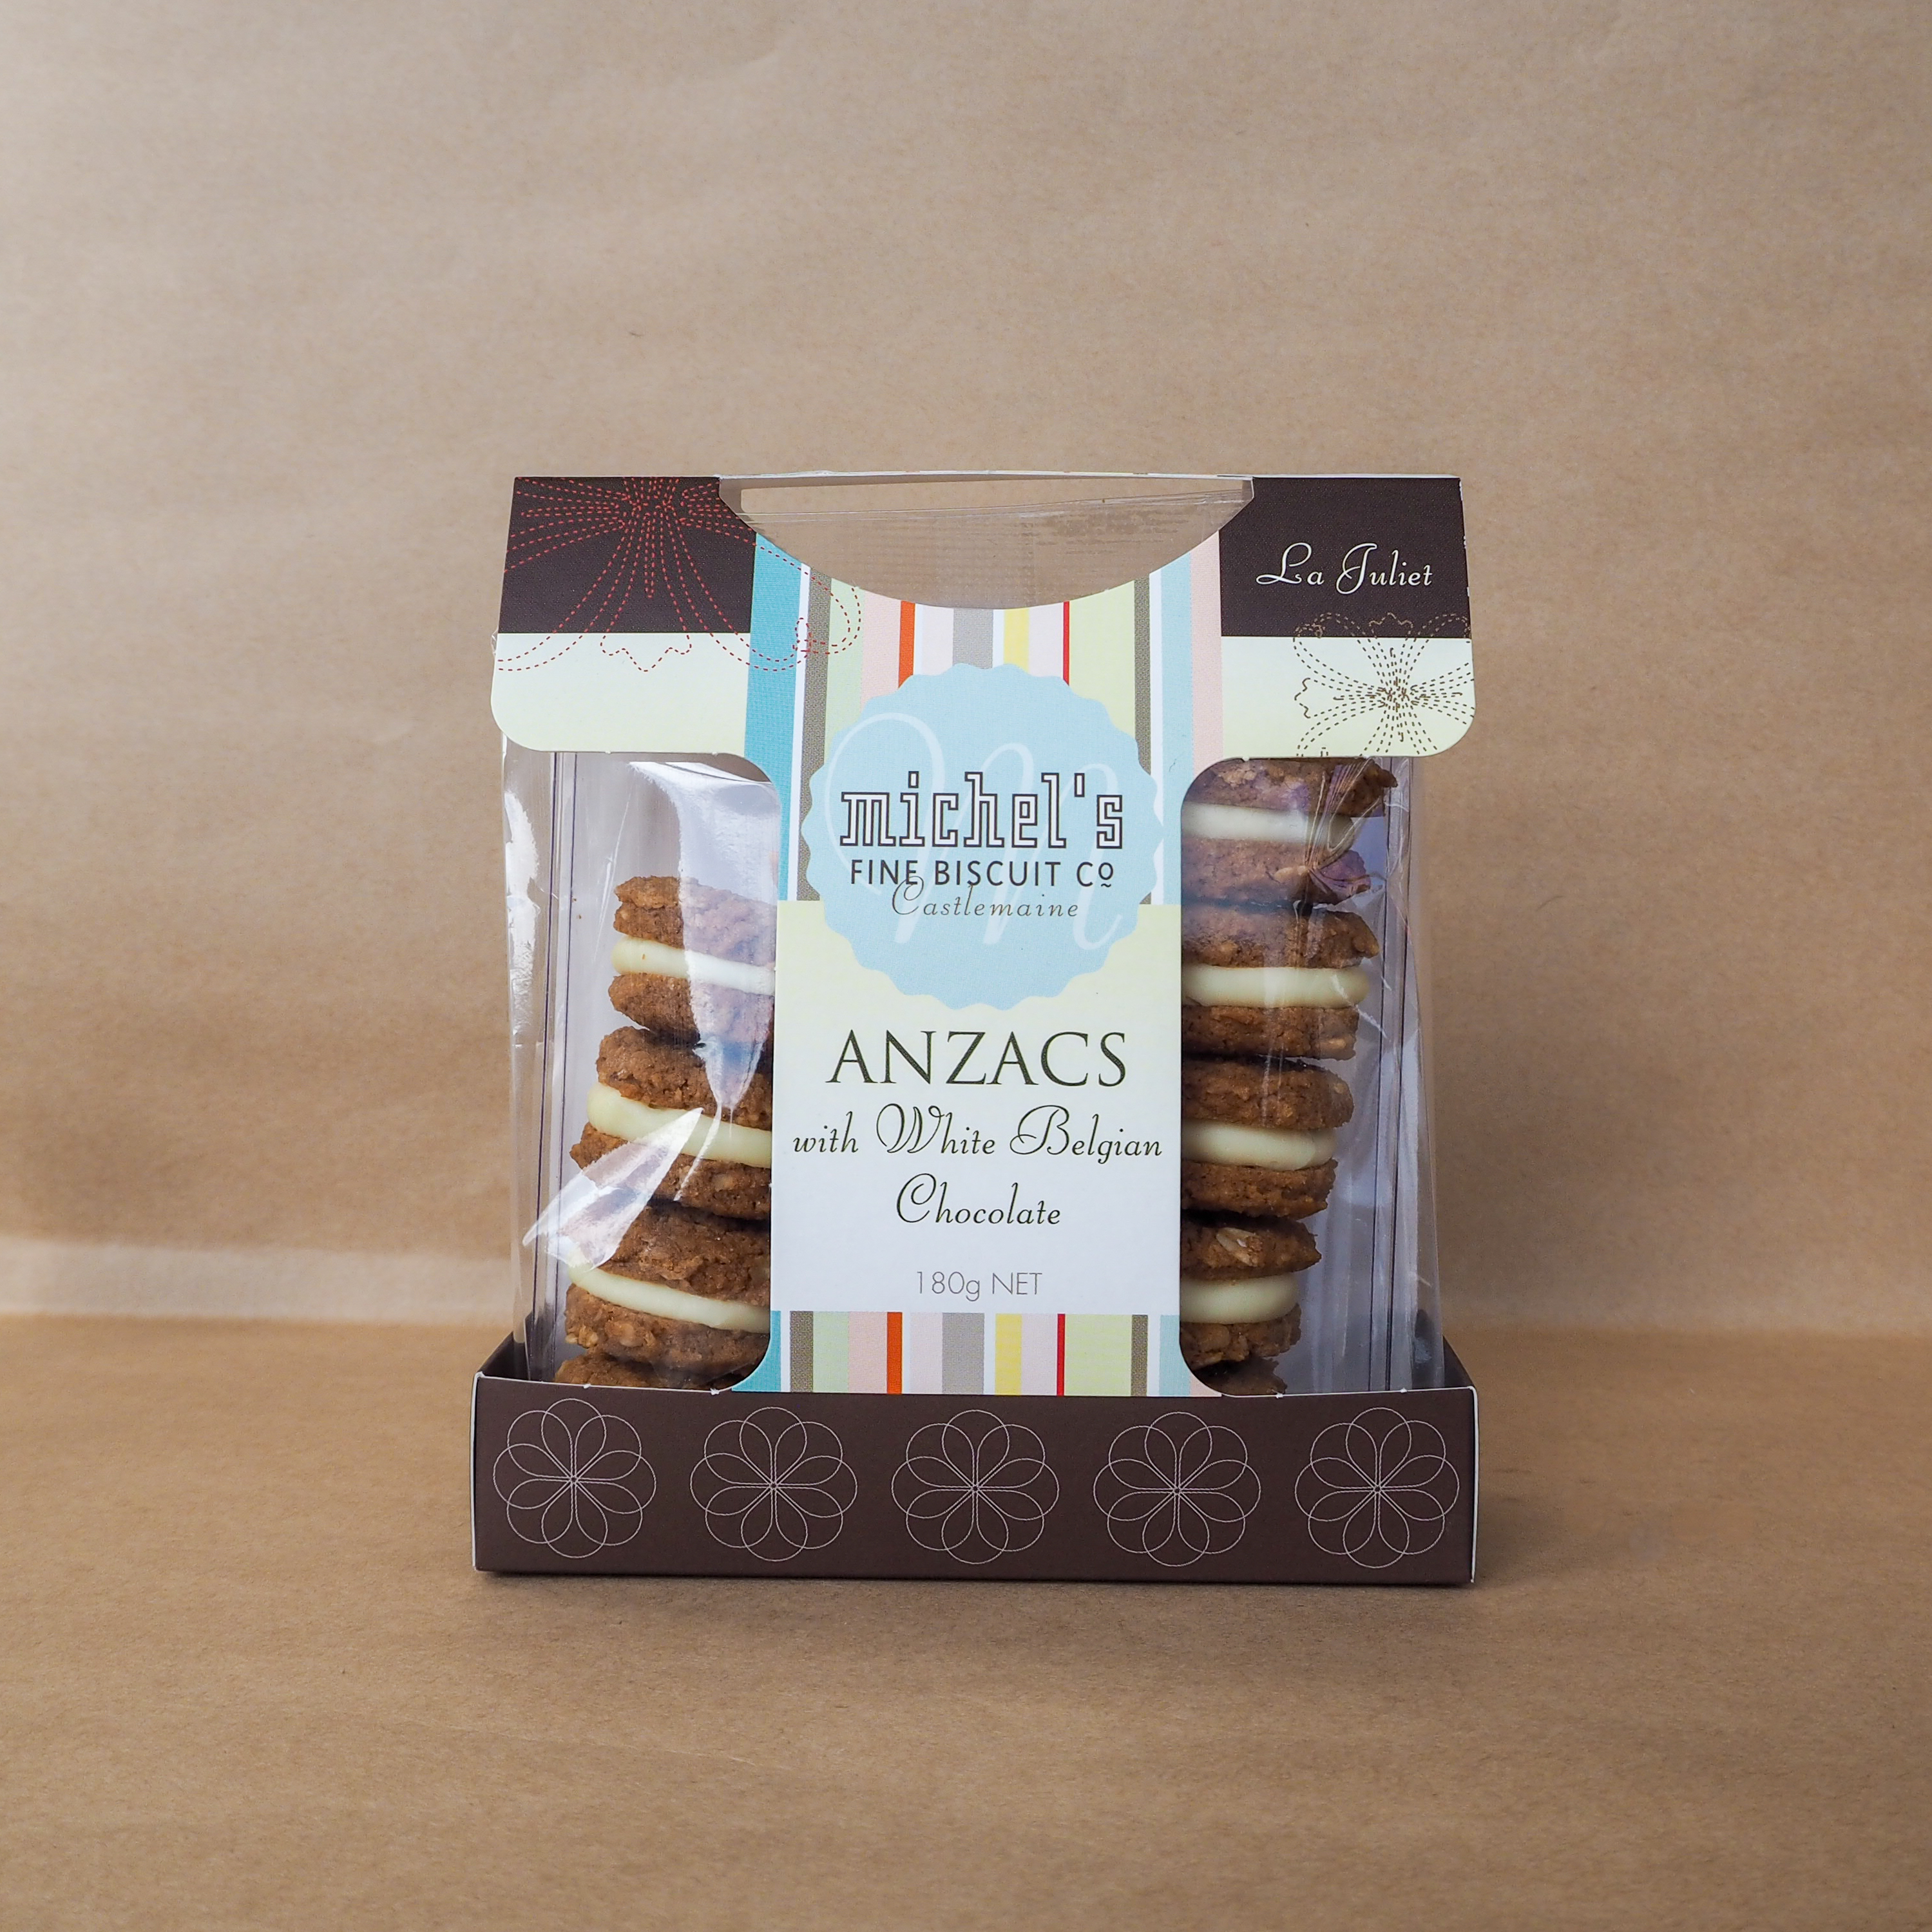 Michel's Fine Biscuit Co - Anzac & White Chocolate Biscuits